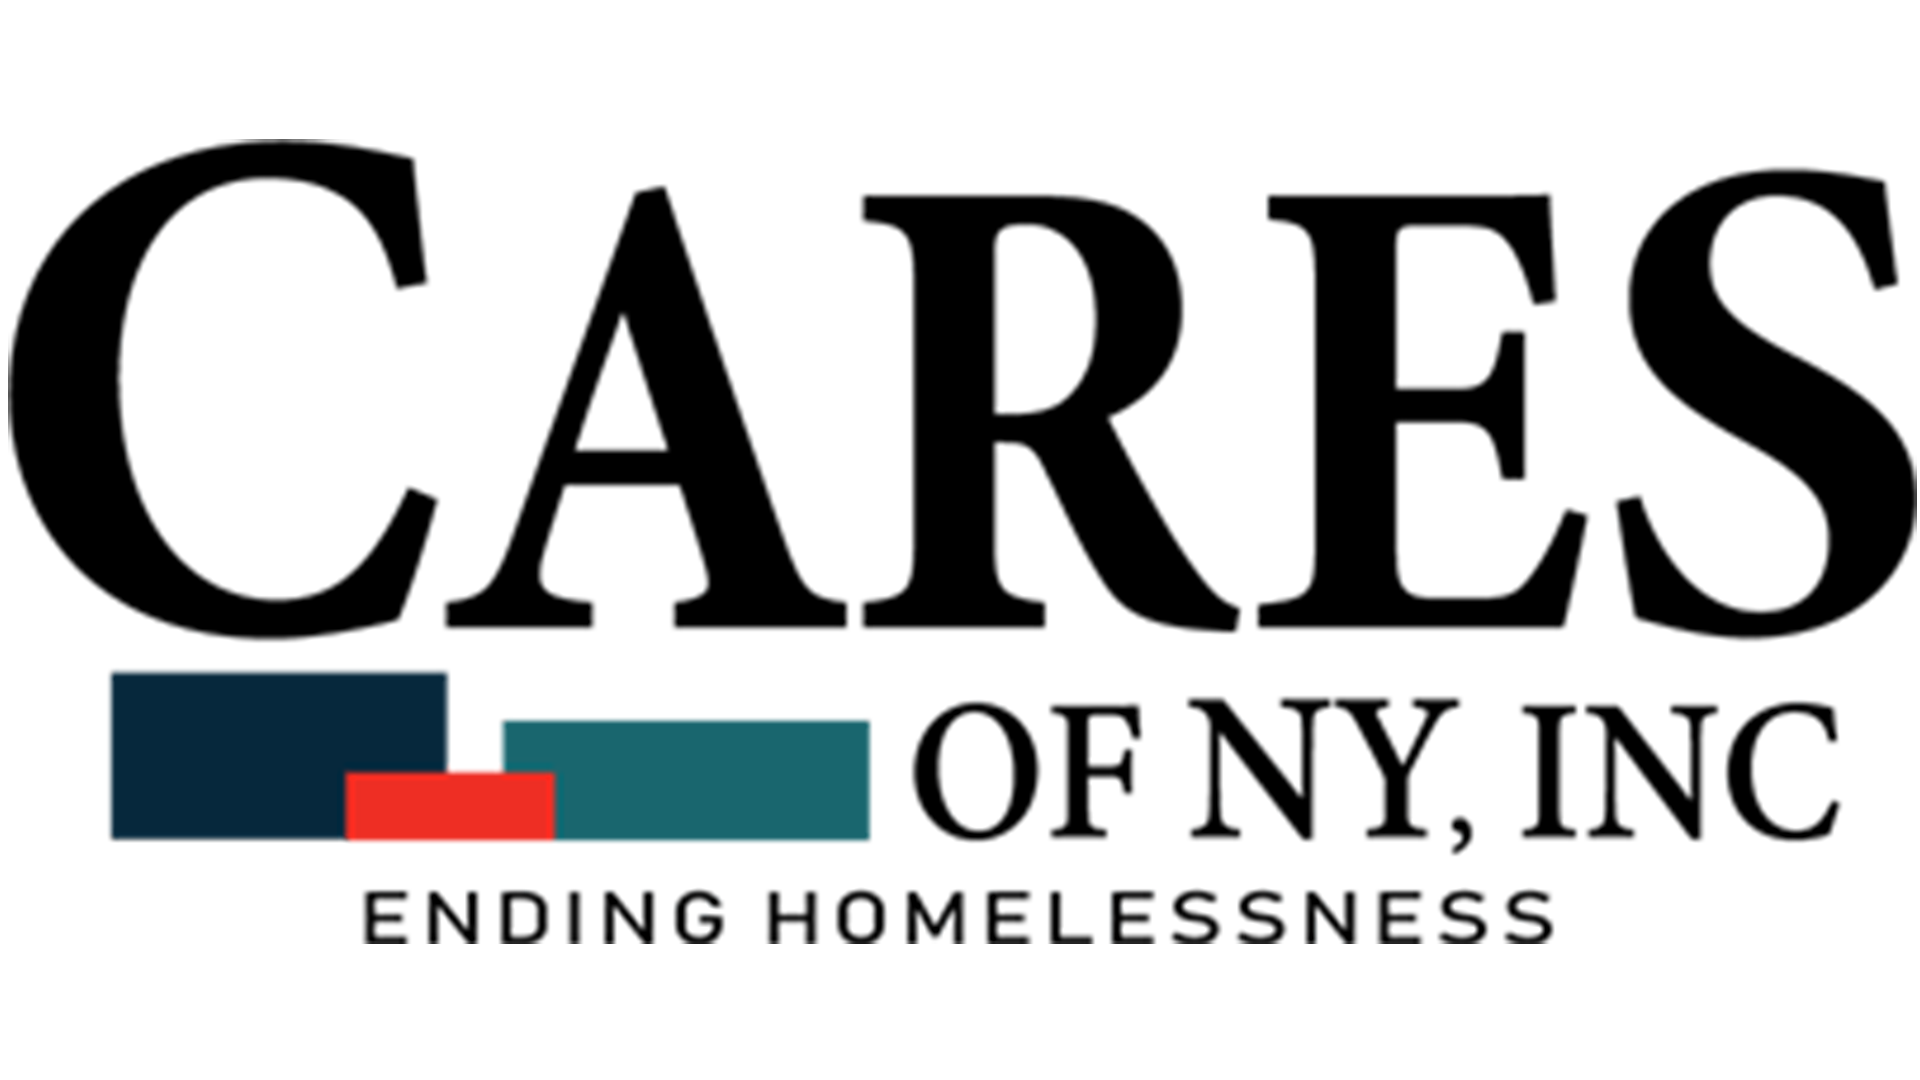 Cares-Updated-logo